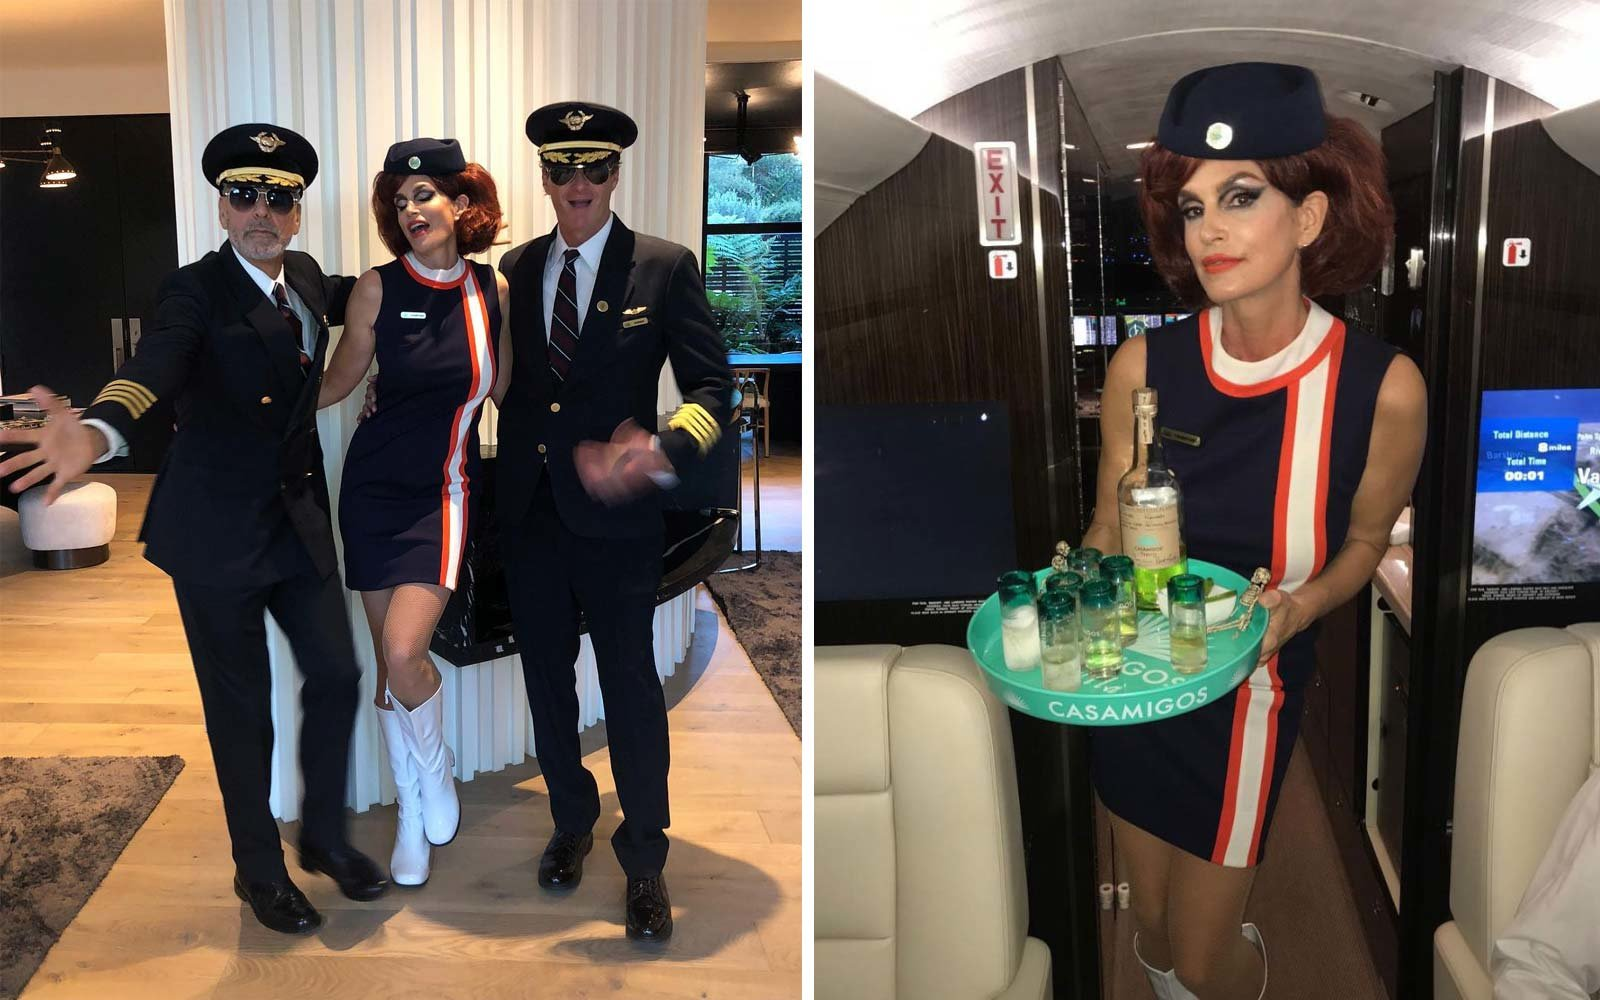 Cindy Crawford as a flight attendant, George Clooney as a pilot